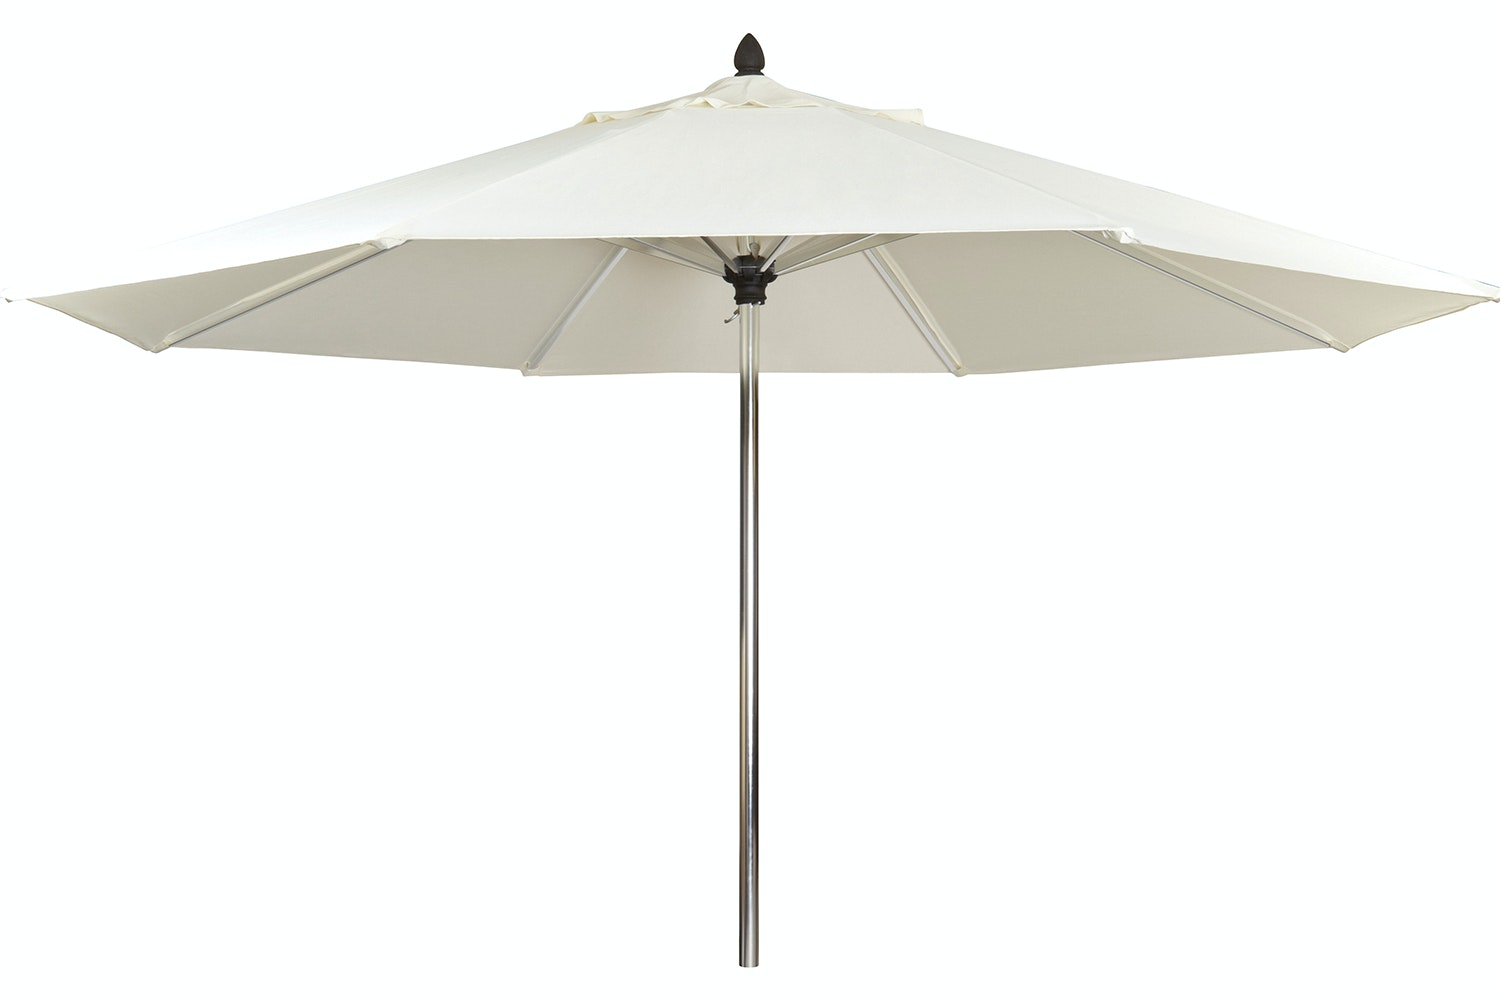 Triton Natural 3.5m Outdoor Umbrella by Peros